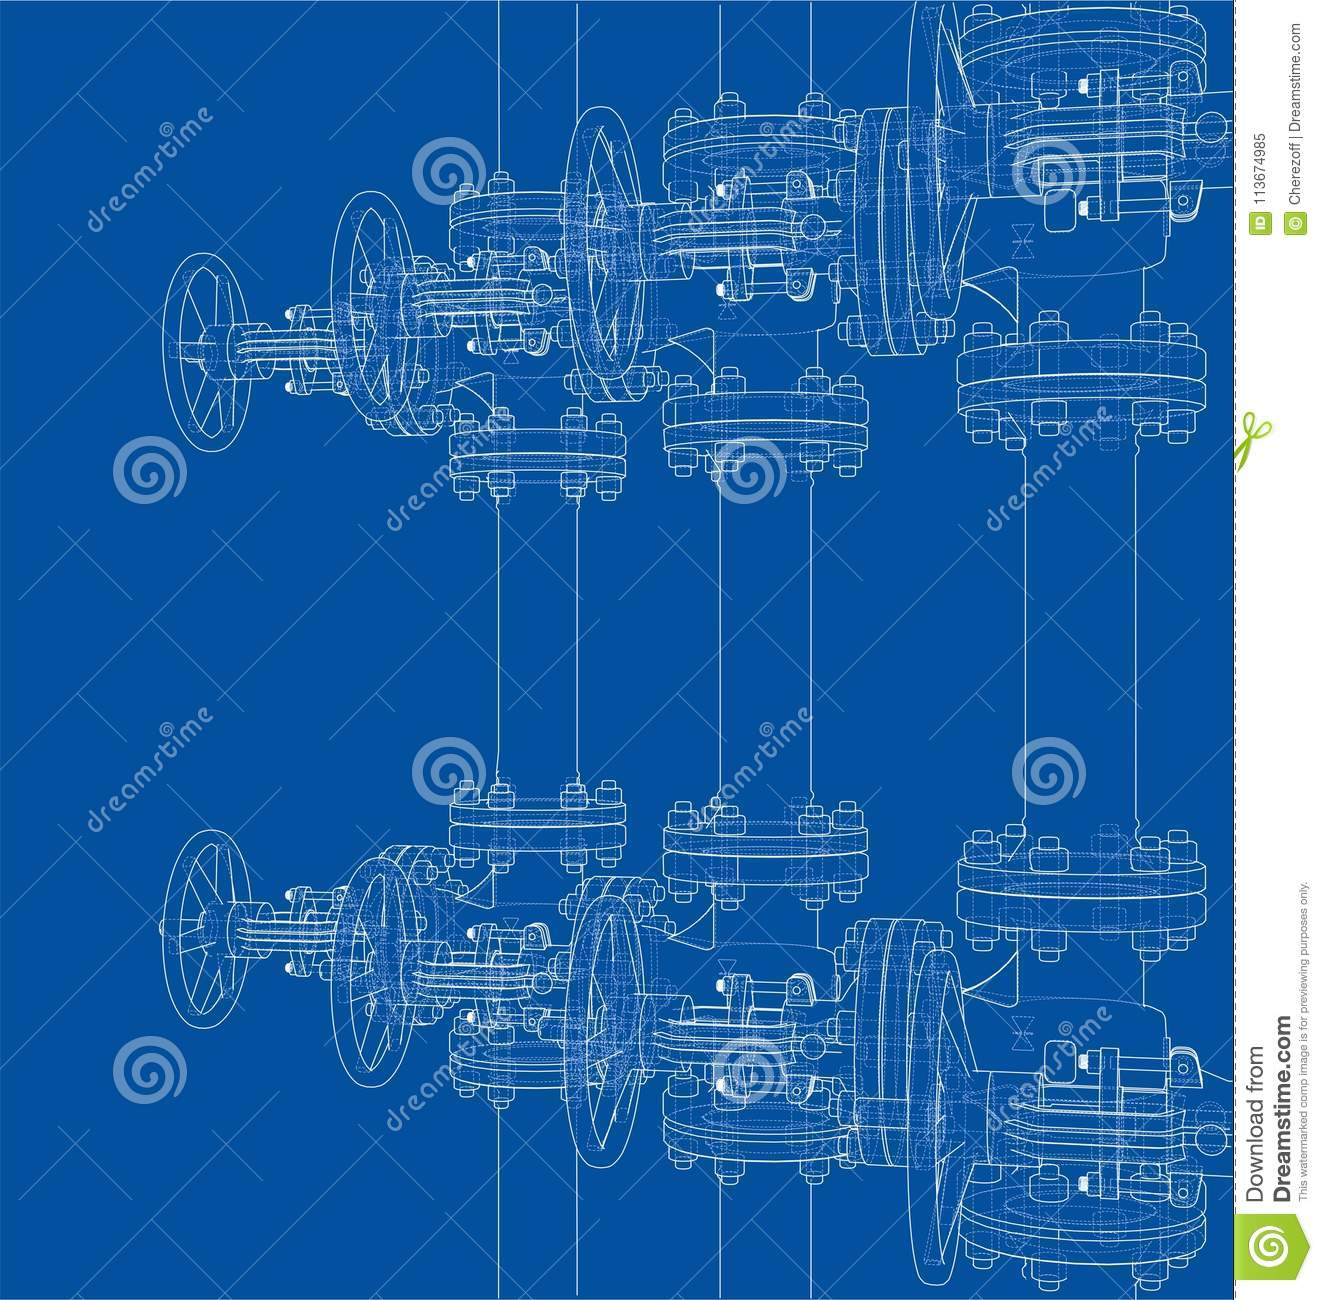 Industrial Valves Sketch 3d Illustration Stock Faucet Valve Diagram Free Download Wiring Schematic Of Piping Outline